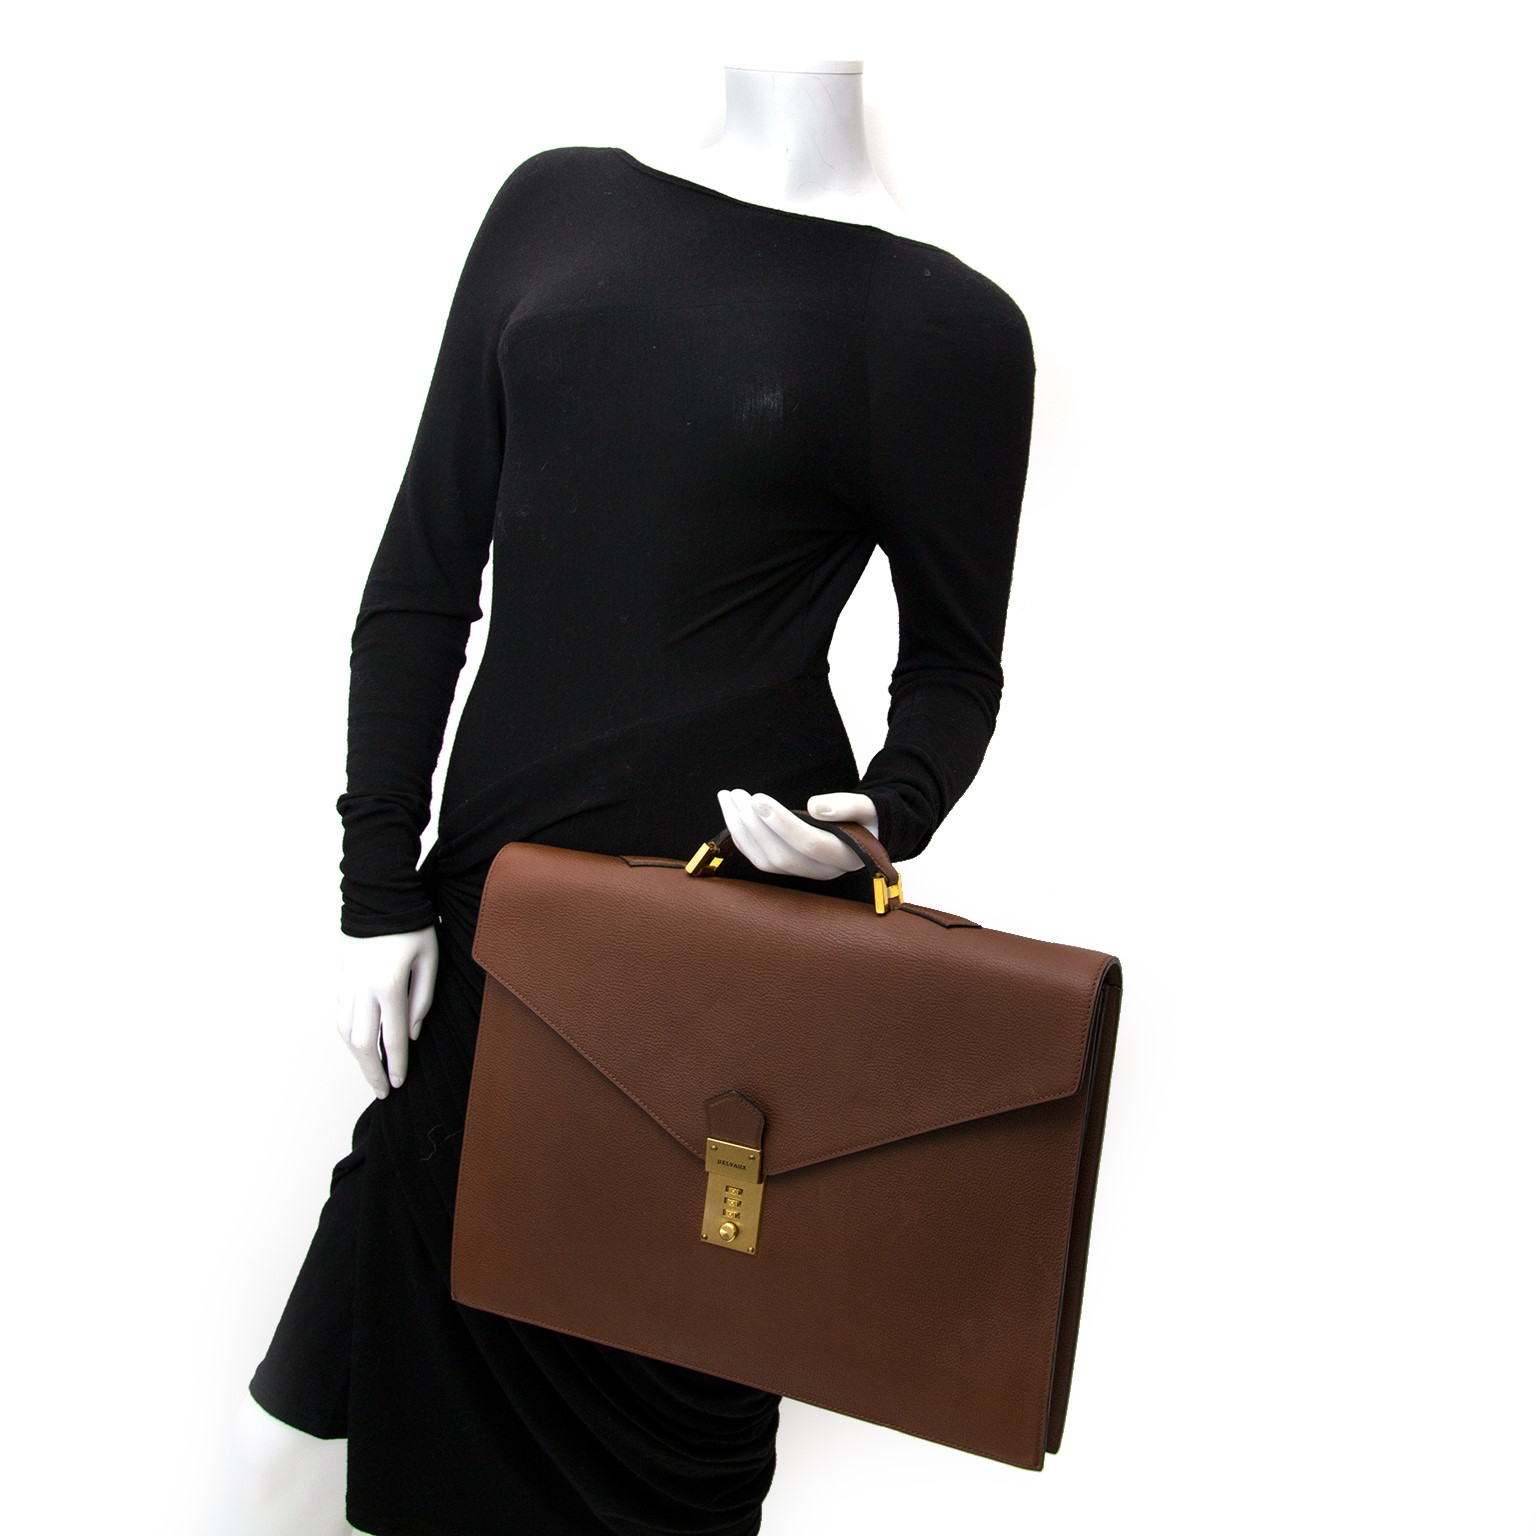 Vintage Delvaux brown briefcase for the best price at Labellov webshop. Safe and secure online shopping with 100% authenticity. Vintage Delvaux brun cartable presse pour le meilleur prix.